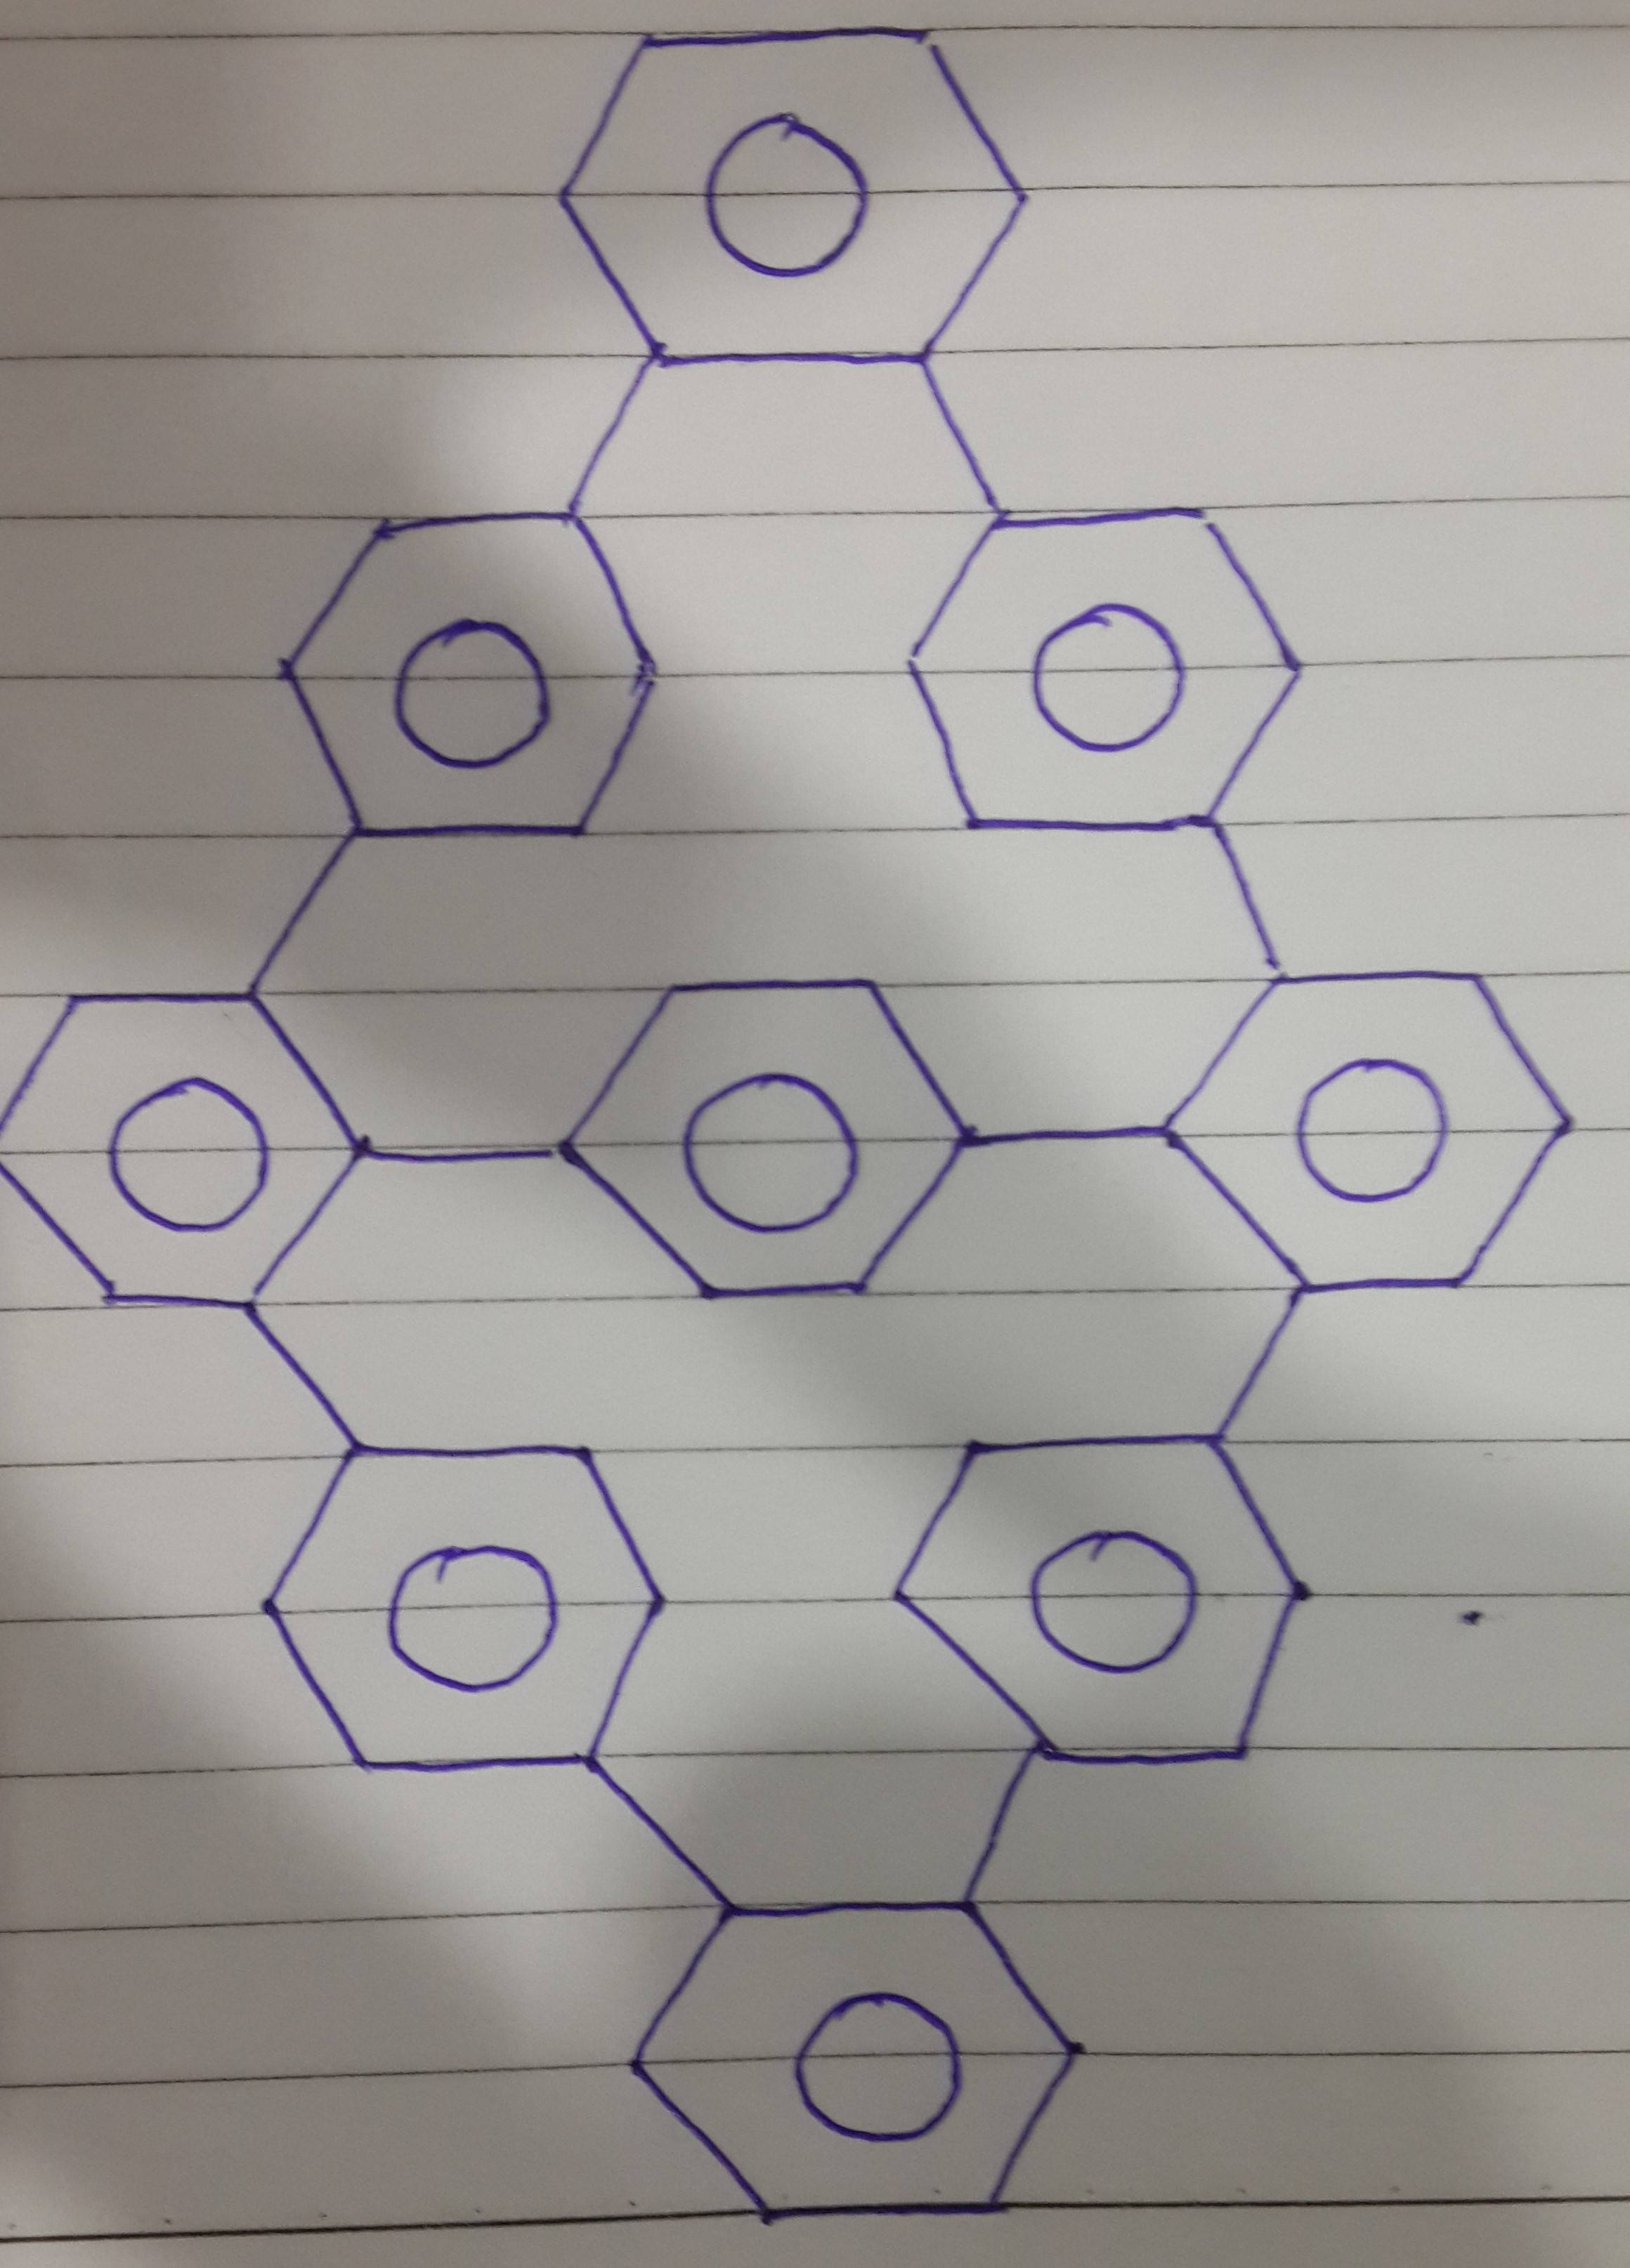 Iupac Nomenclature For An Interesting Looking Organic